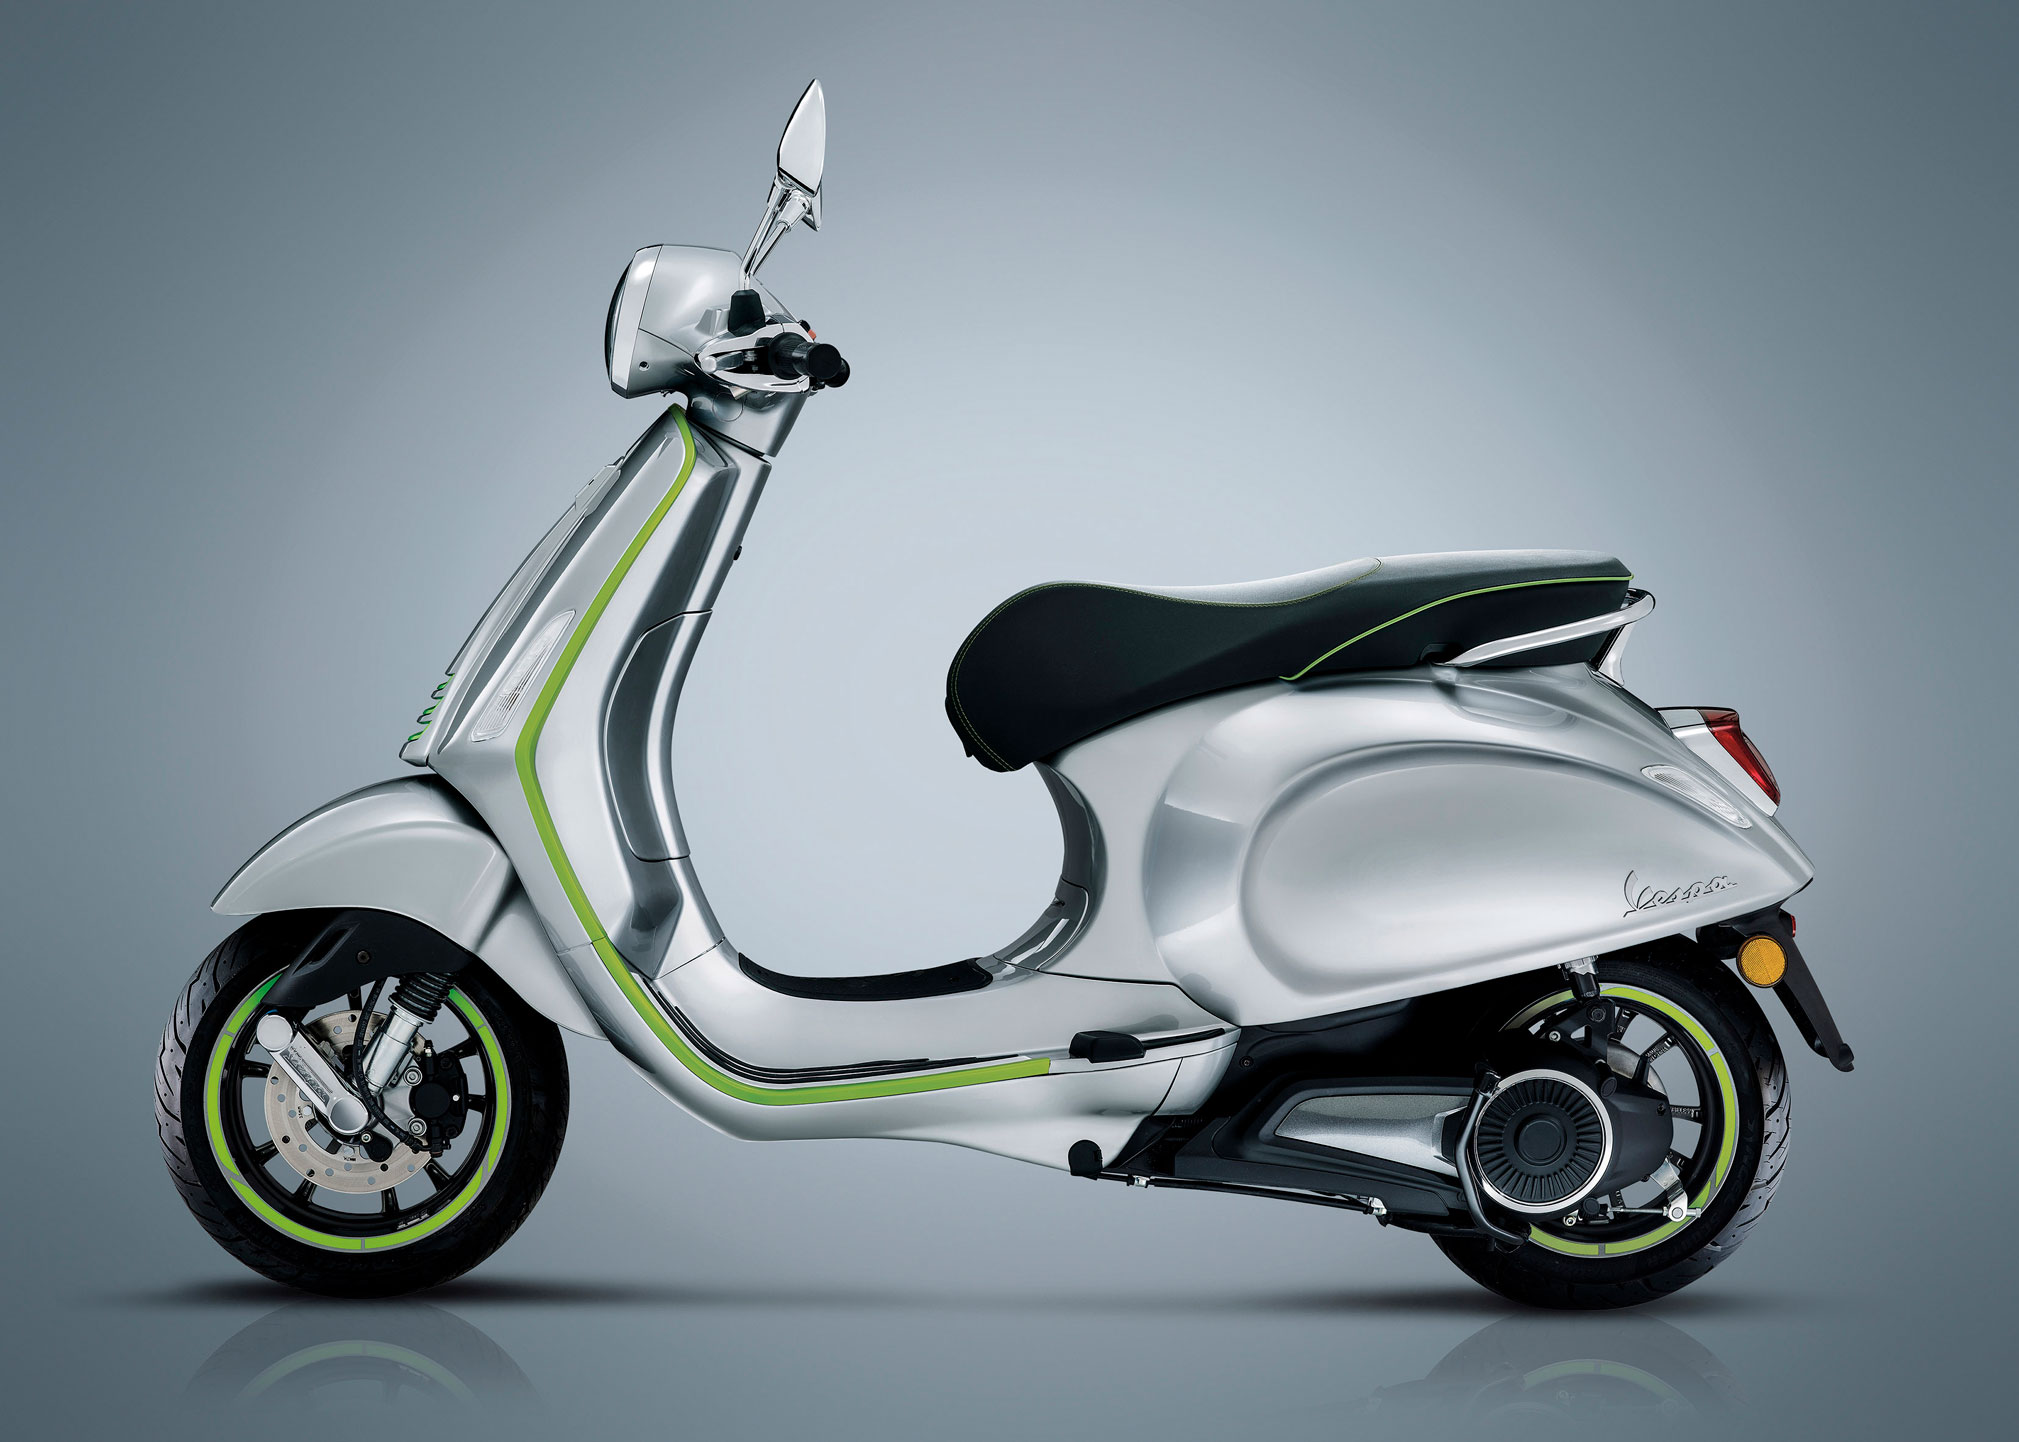 2019 Vespa Elettrica Guide • Total Motorcycle